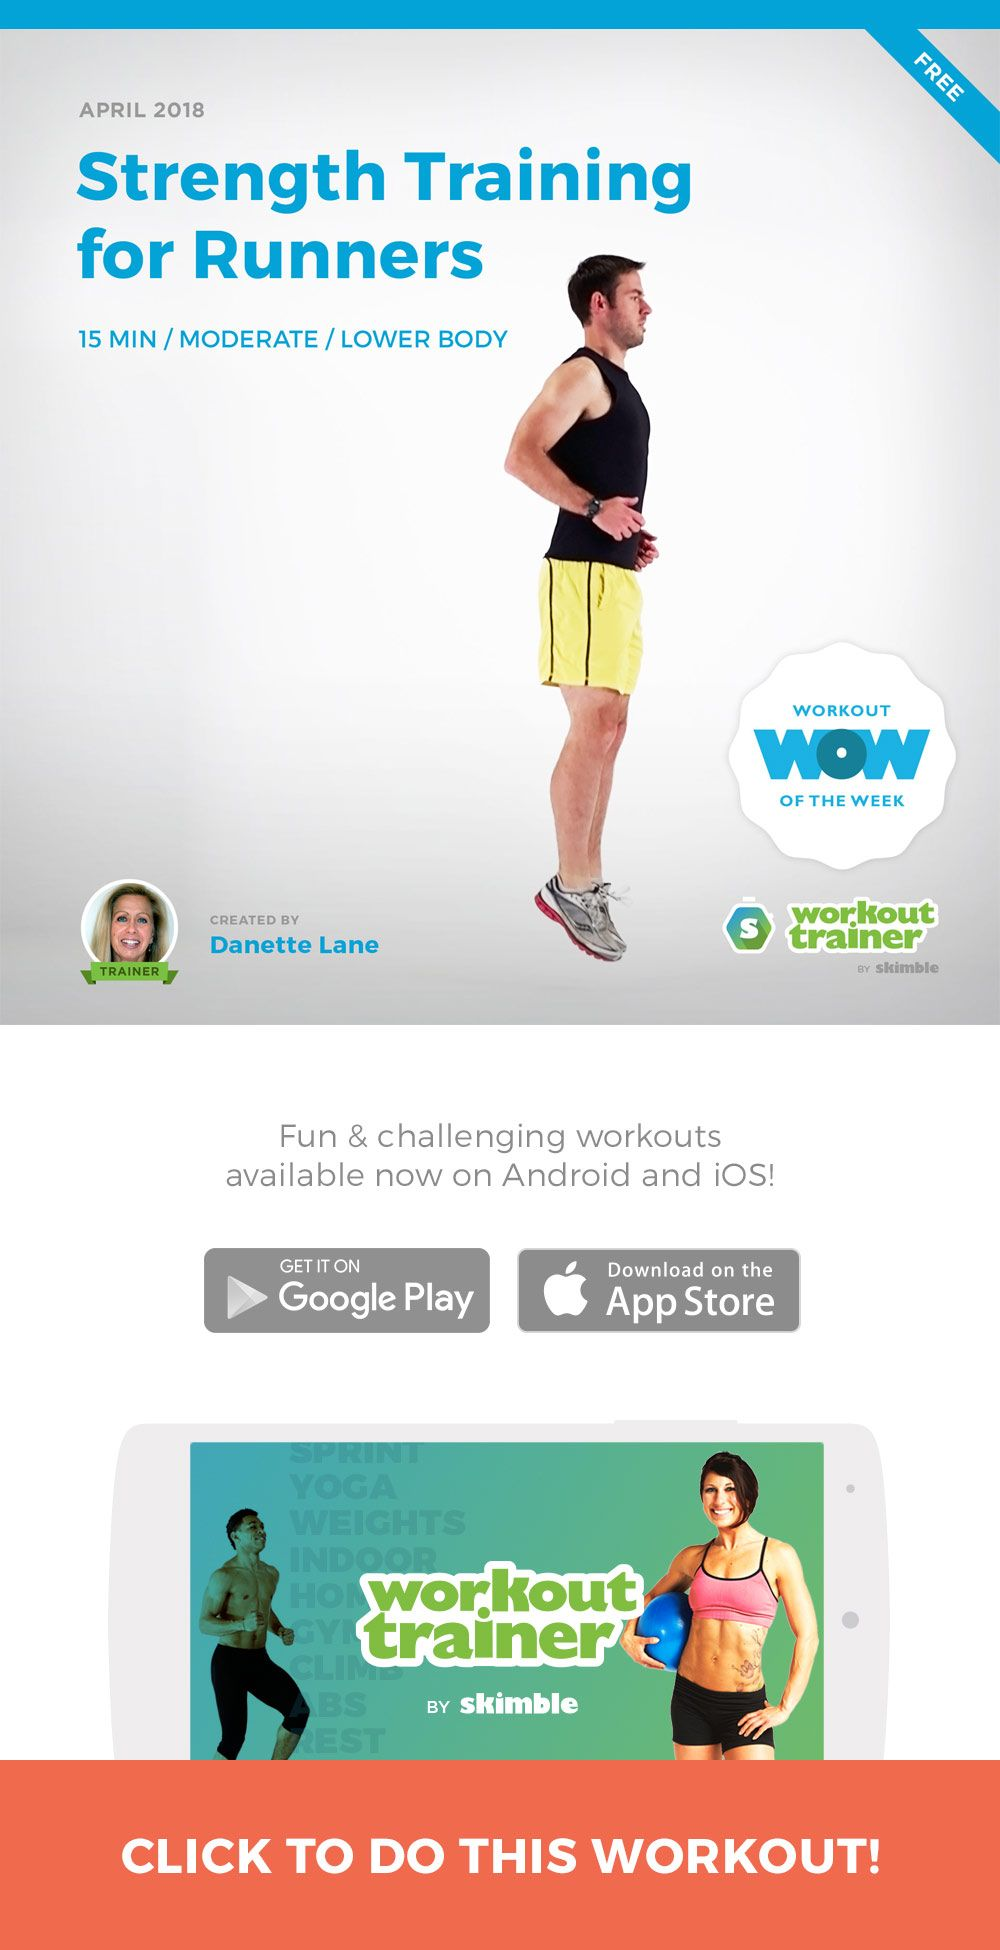 Strength Training For Runners Free Workout Of The Week Pinterest Beginning Circuitry Build A Metronome Designed To Strengthen Your Core Hamstrings And Hip Flexors More Efficient Running Use Do Pogo Hops 180bpm